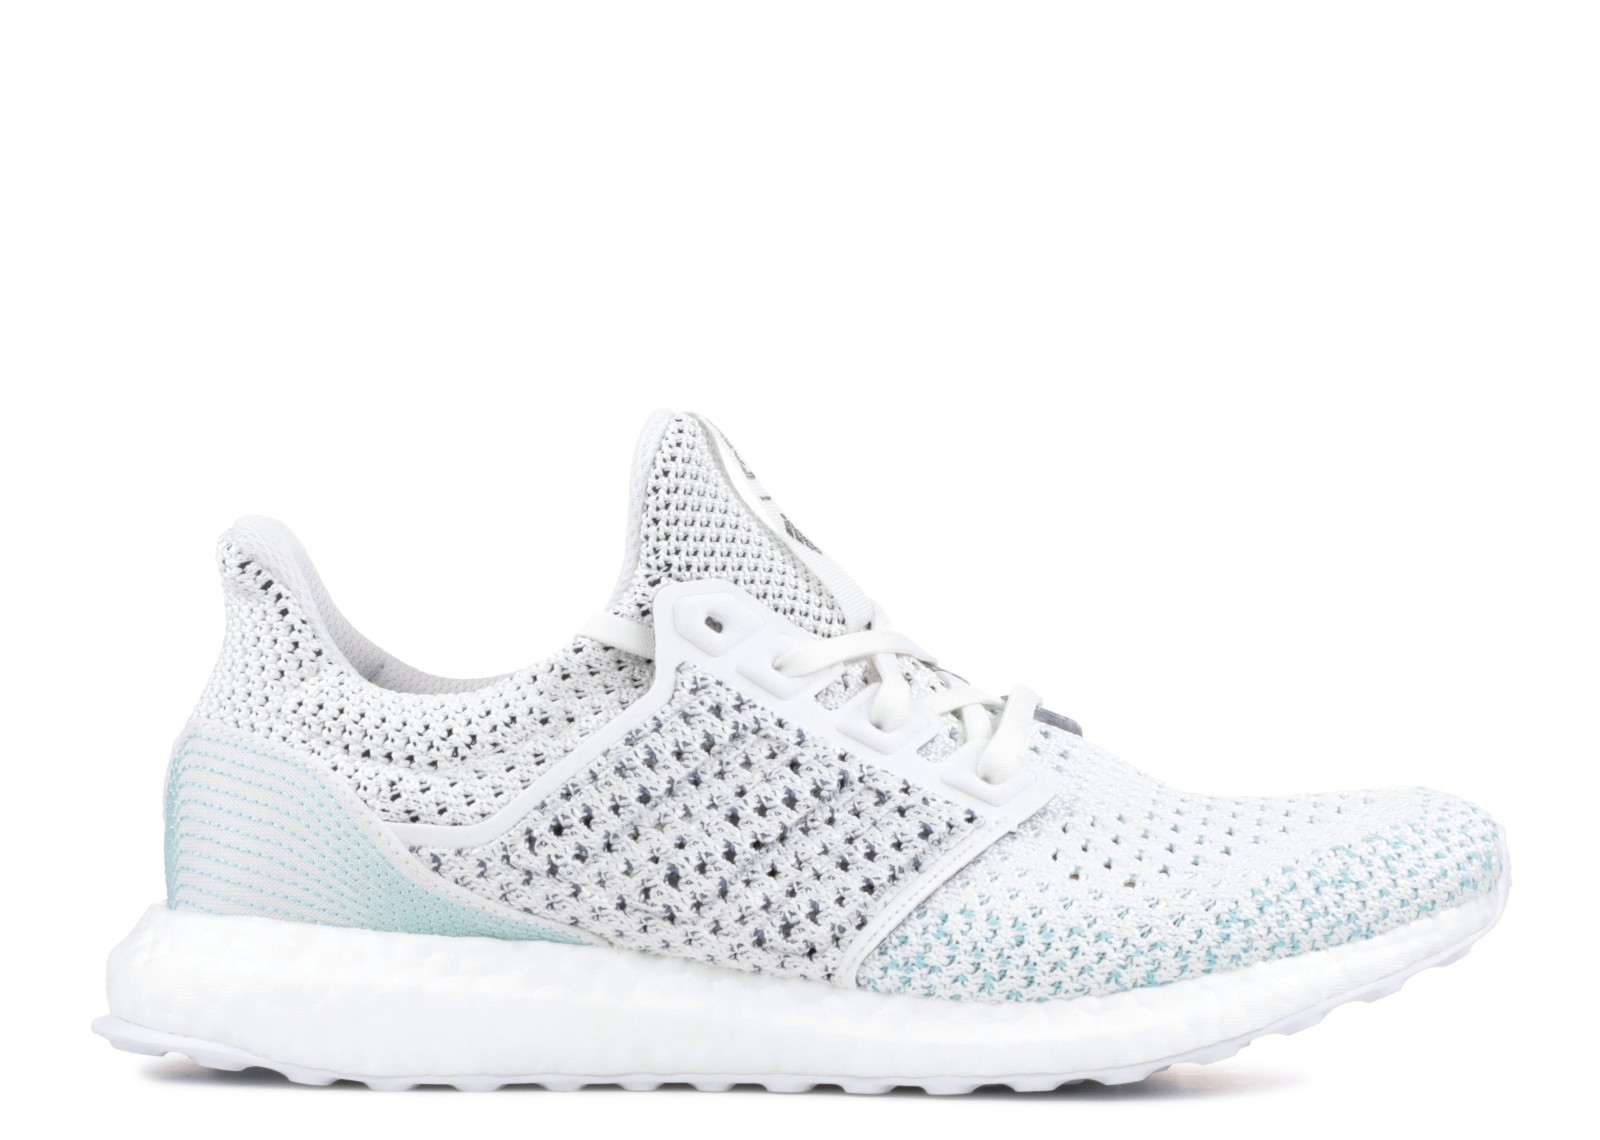 adidas Ultra Boost Parley LTD Skor BB7076